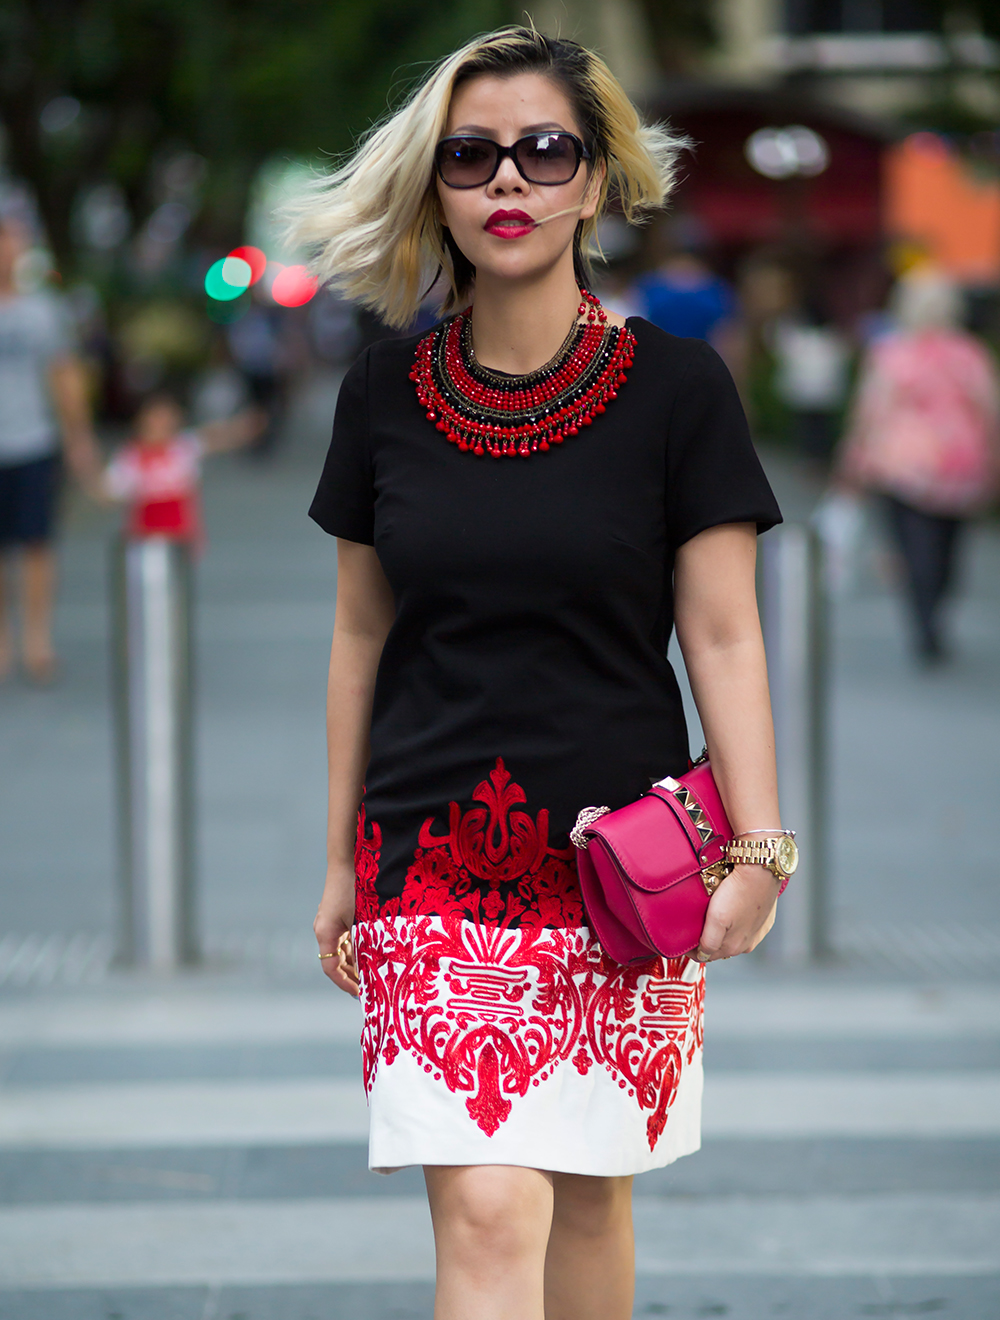 Fashion Blogger- CrystalPhuong- in FewModa black and white embroidered dress